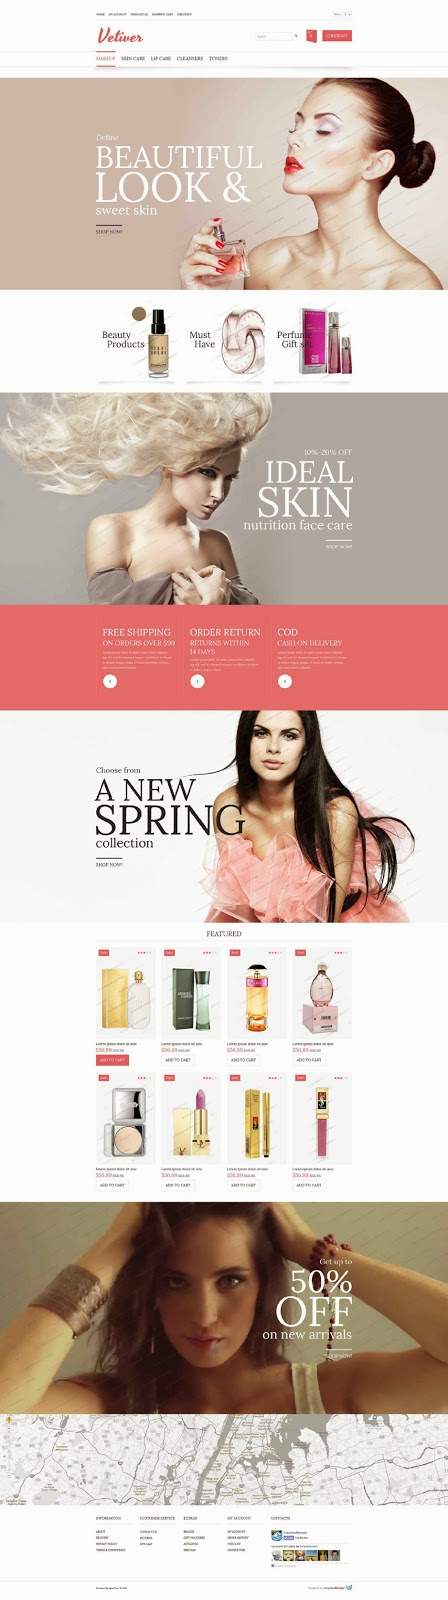 Download Free Contemporary-Style Free OpenCart Cosmetics Store Theme